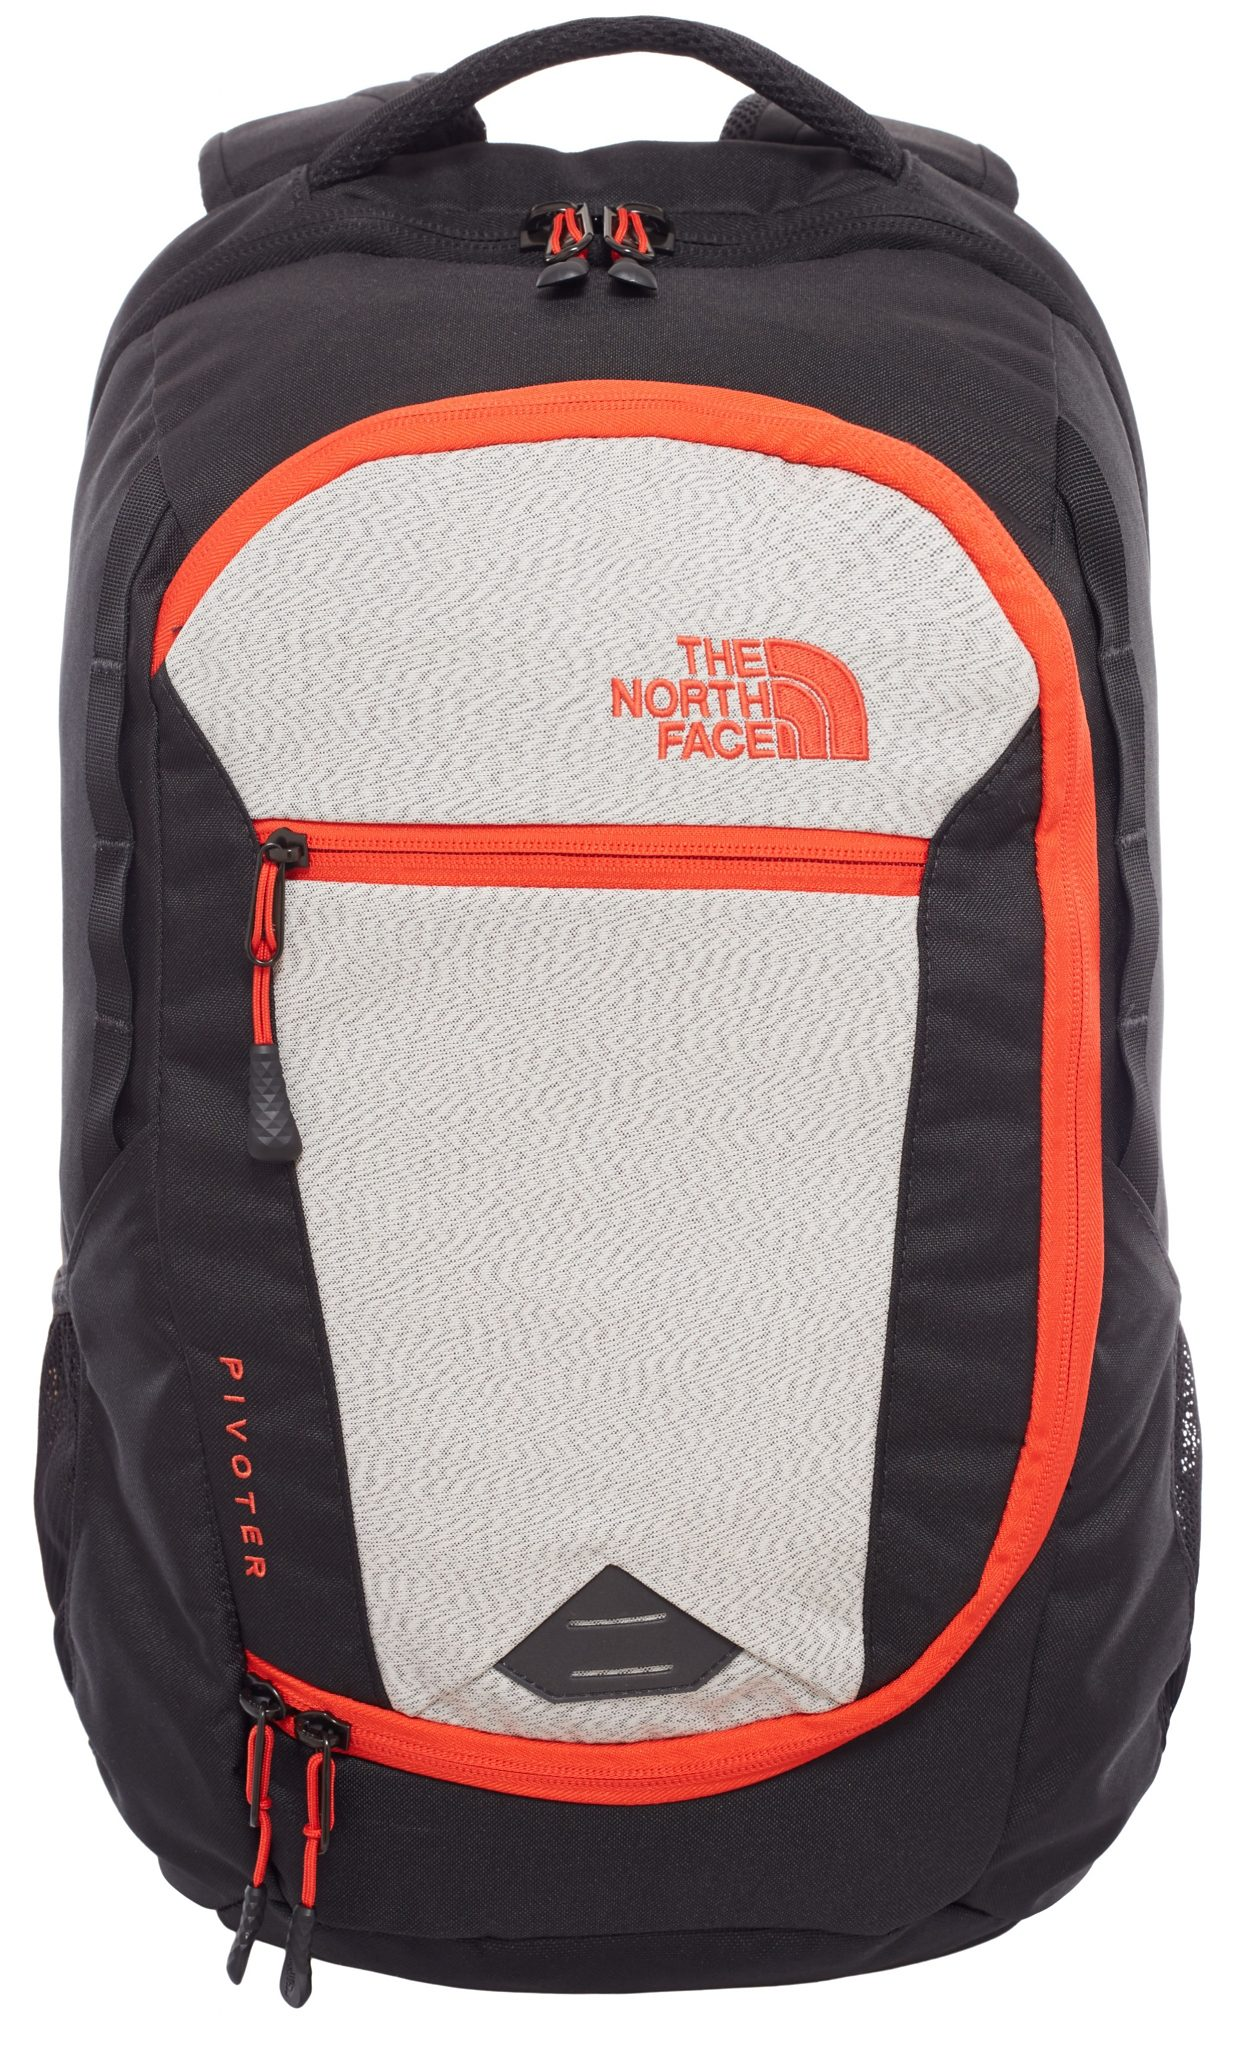 The North Face Sport- und Freizeittasche »Pivoter Backpack«